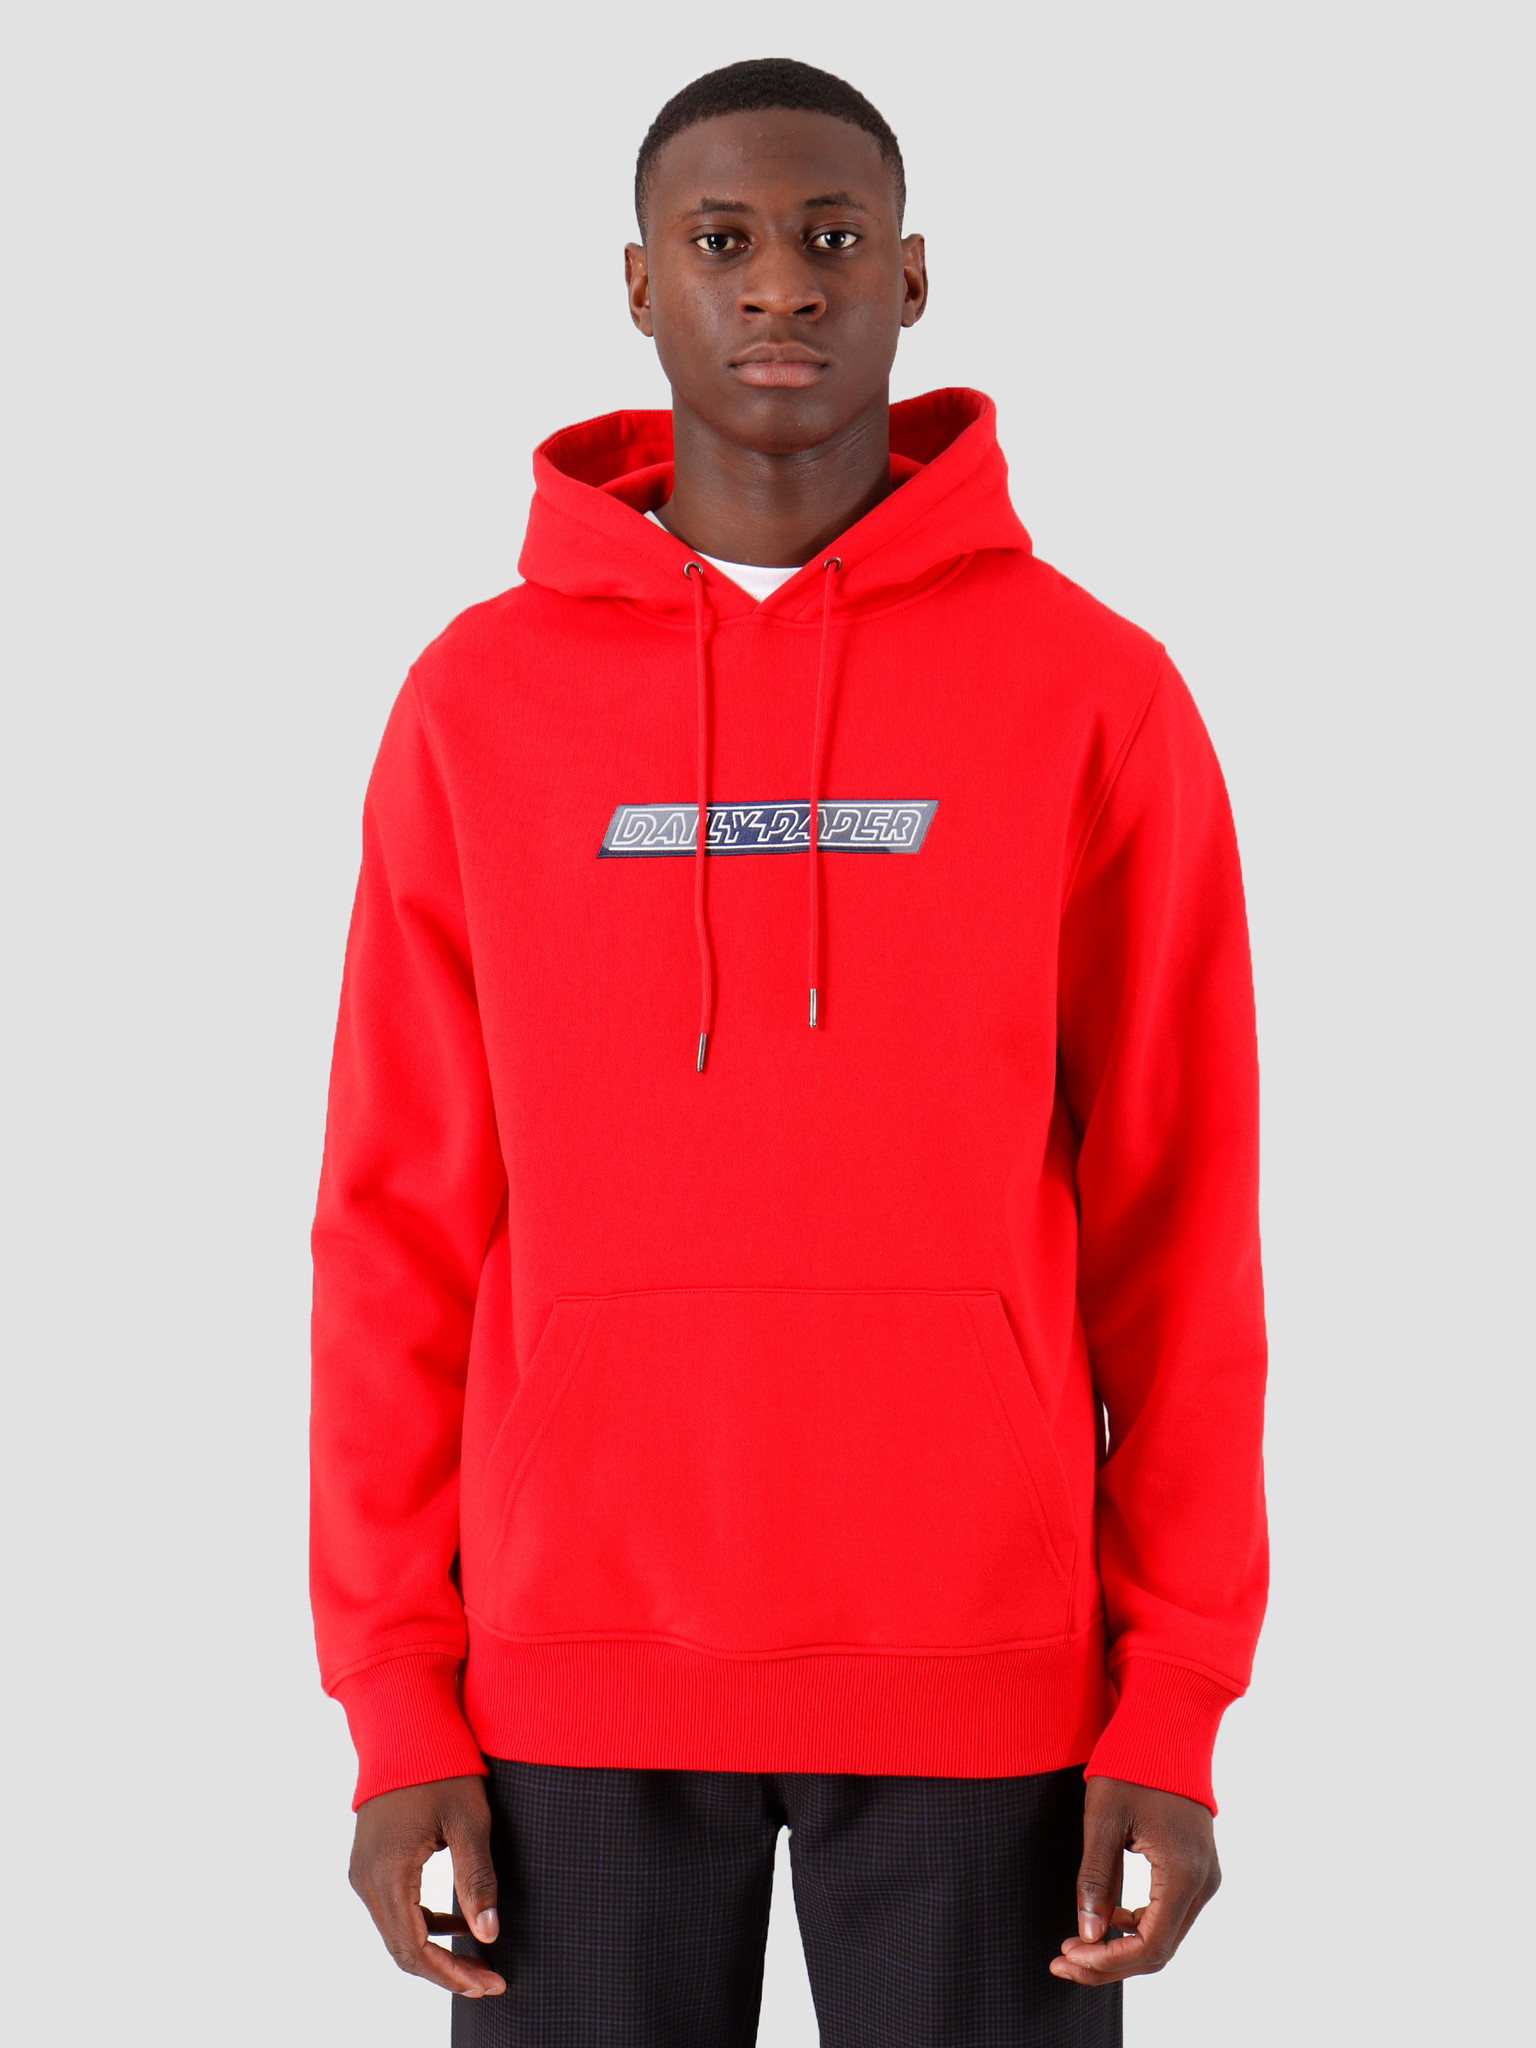 Daily Paper Daily Paper Copatch Hoodie Red Navy 19S1Hd09 04